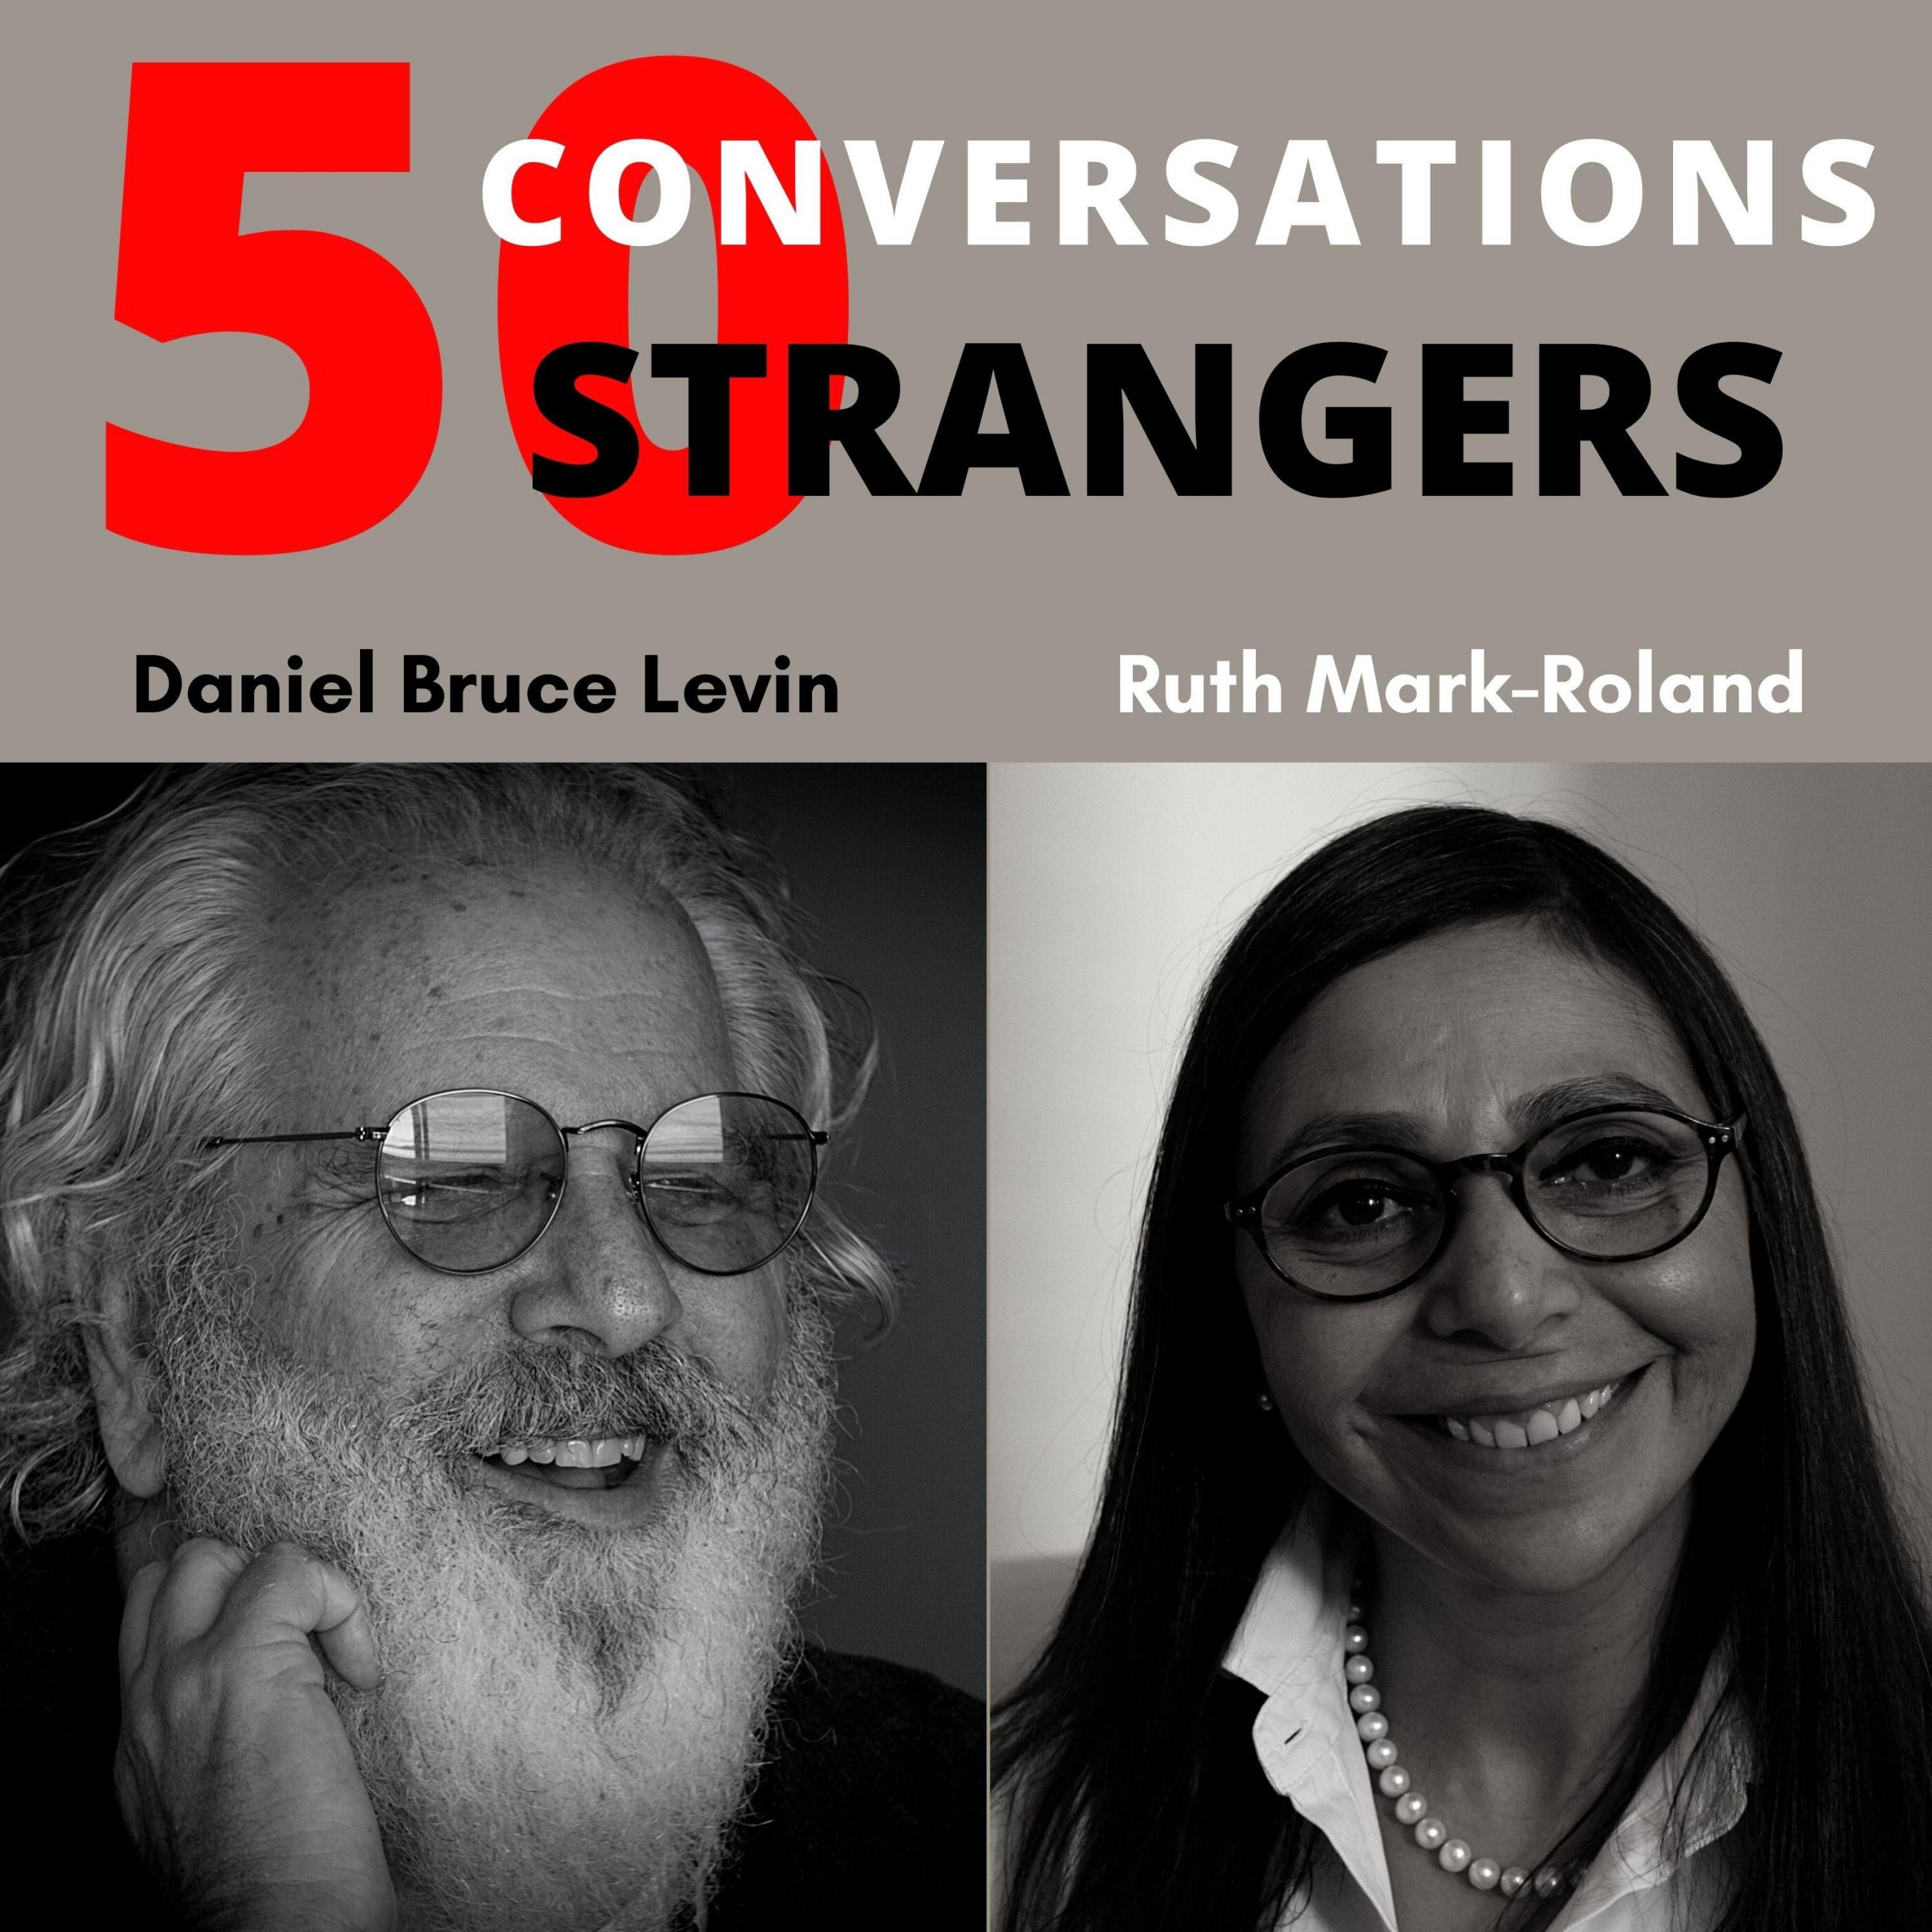 50 Conversations with 50 Strangers with Ruth Mark-Rowland